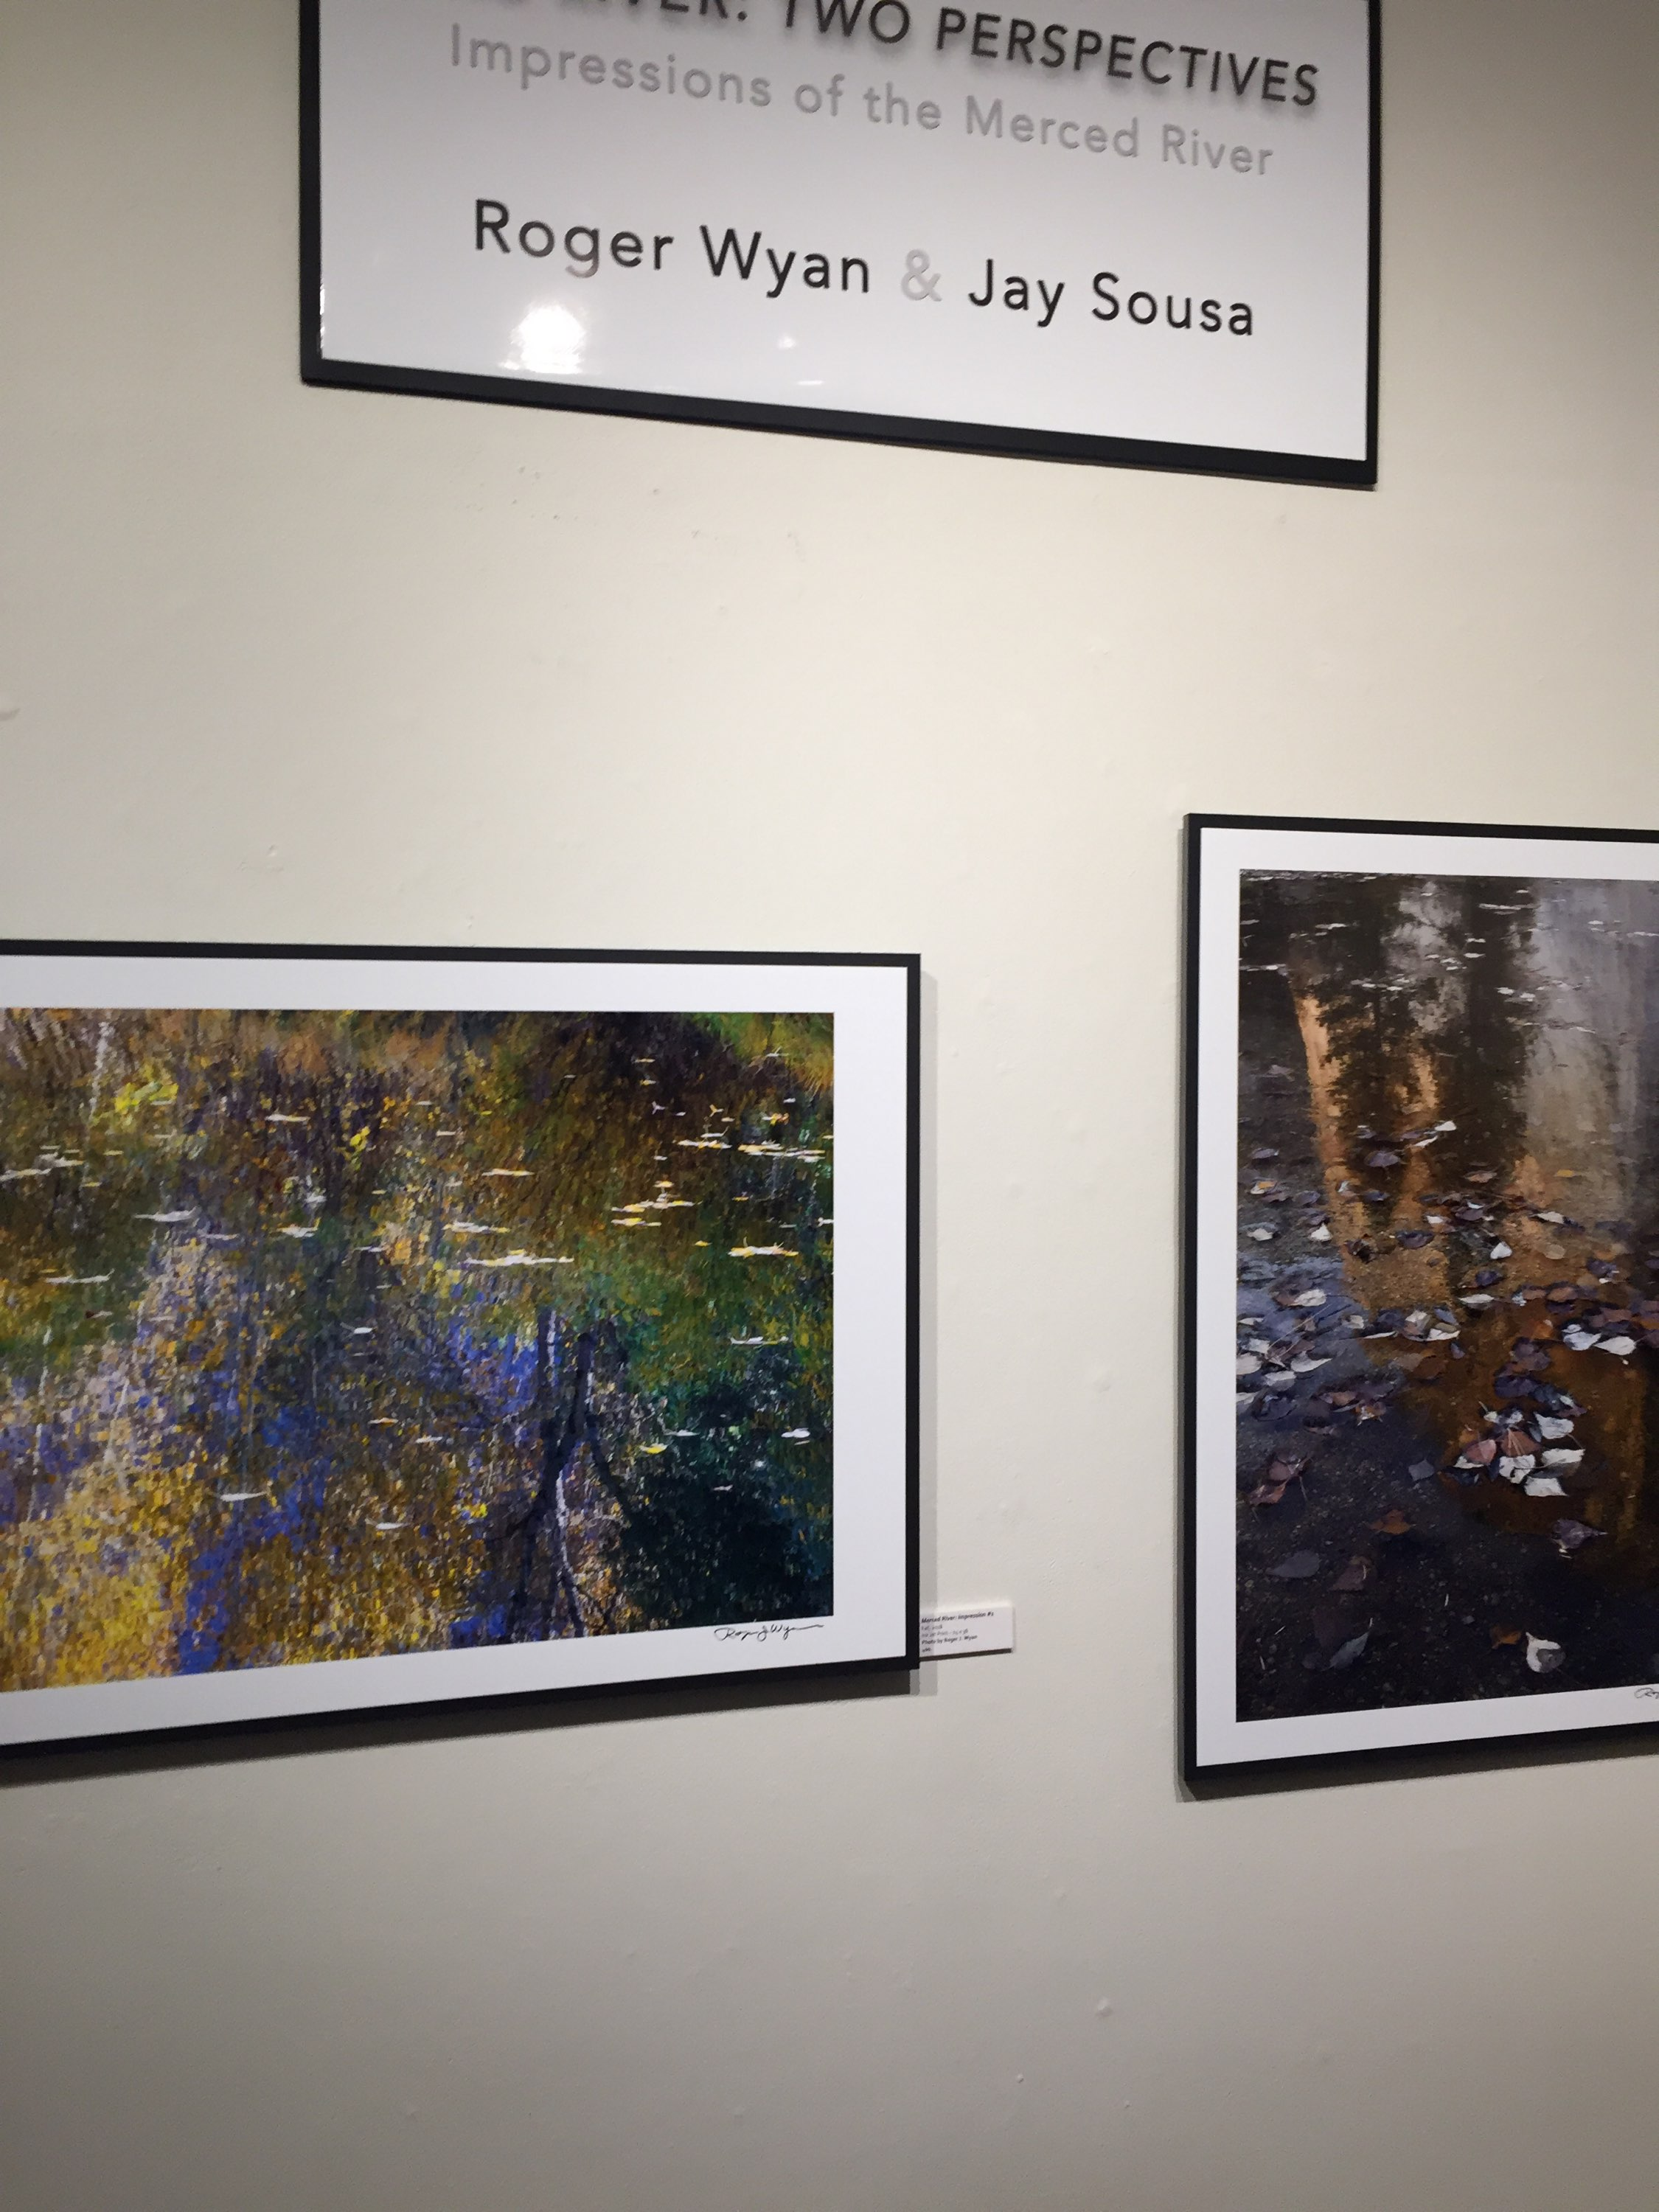 The photography exhibit One River, Two Perspectives is running at the Merced College Gallery through March 21. Photo: Steve Newvine